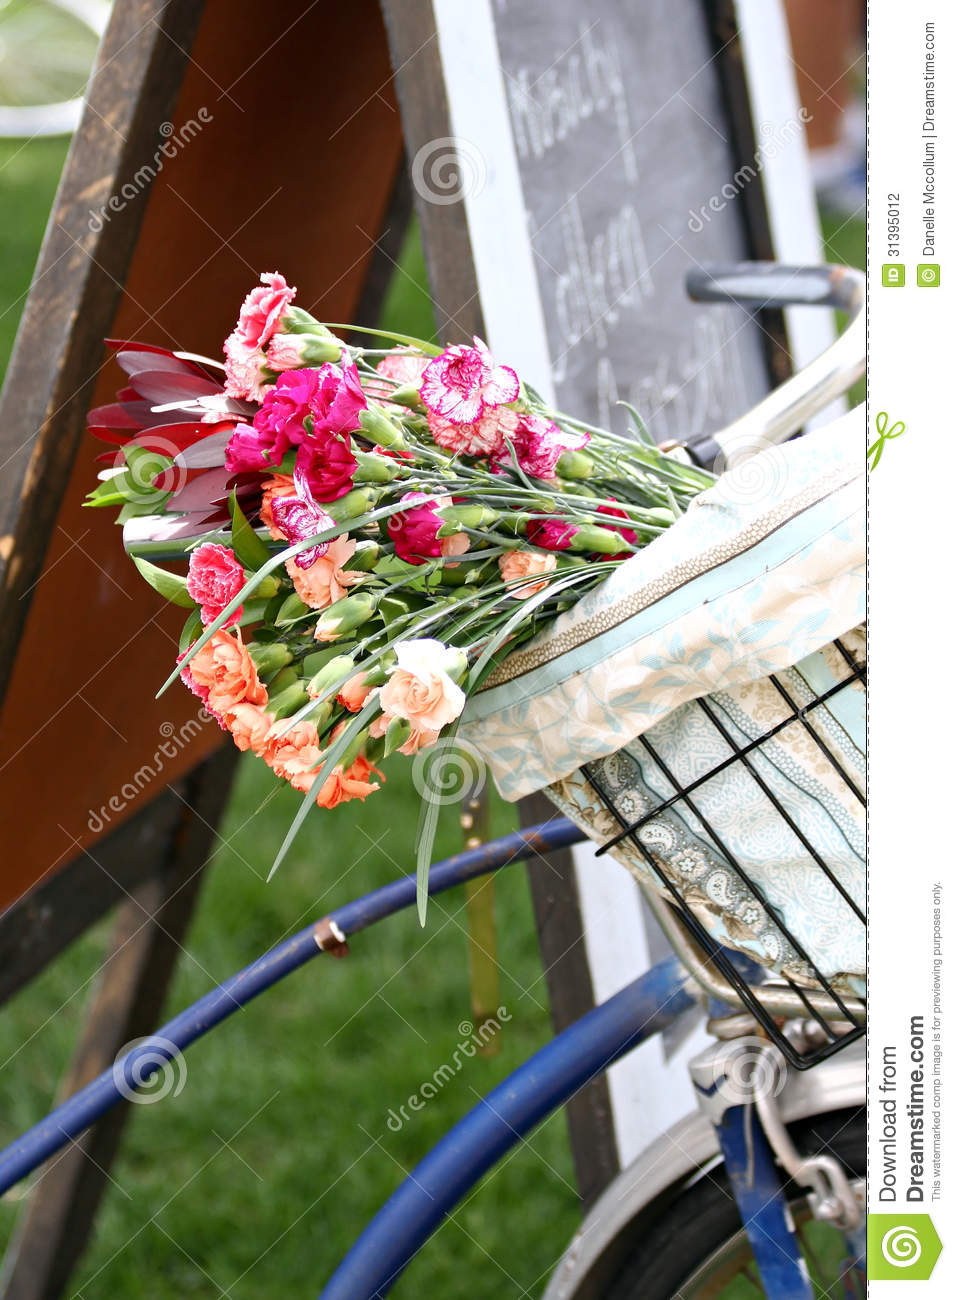 Bike Basket With Flowers Stock Photo Image Of Basket